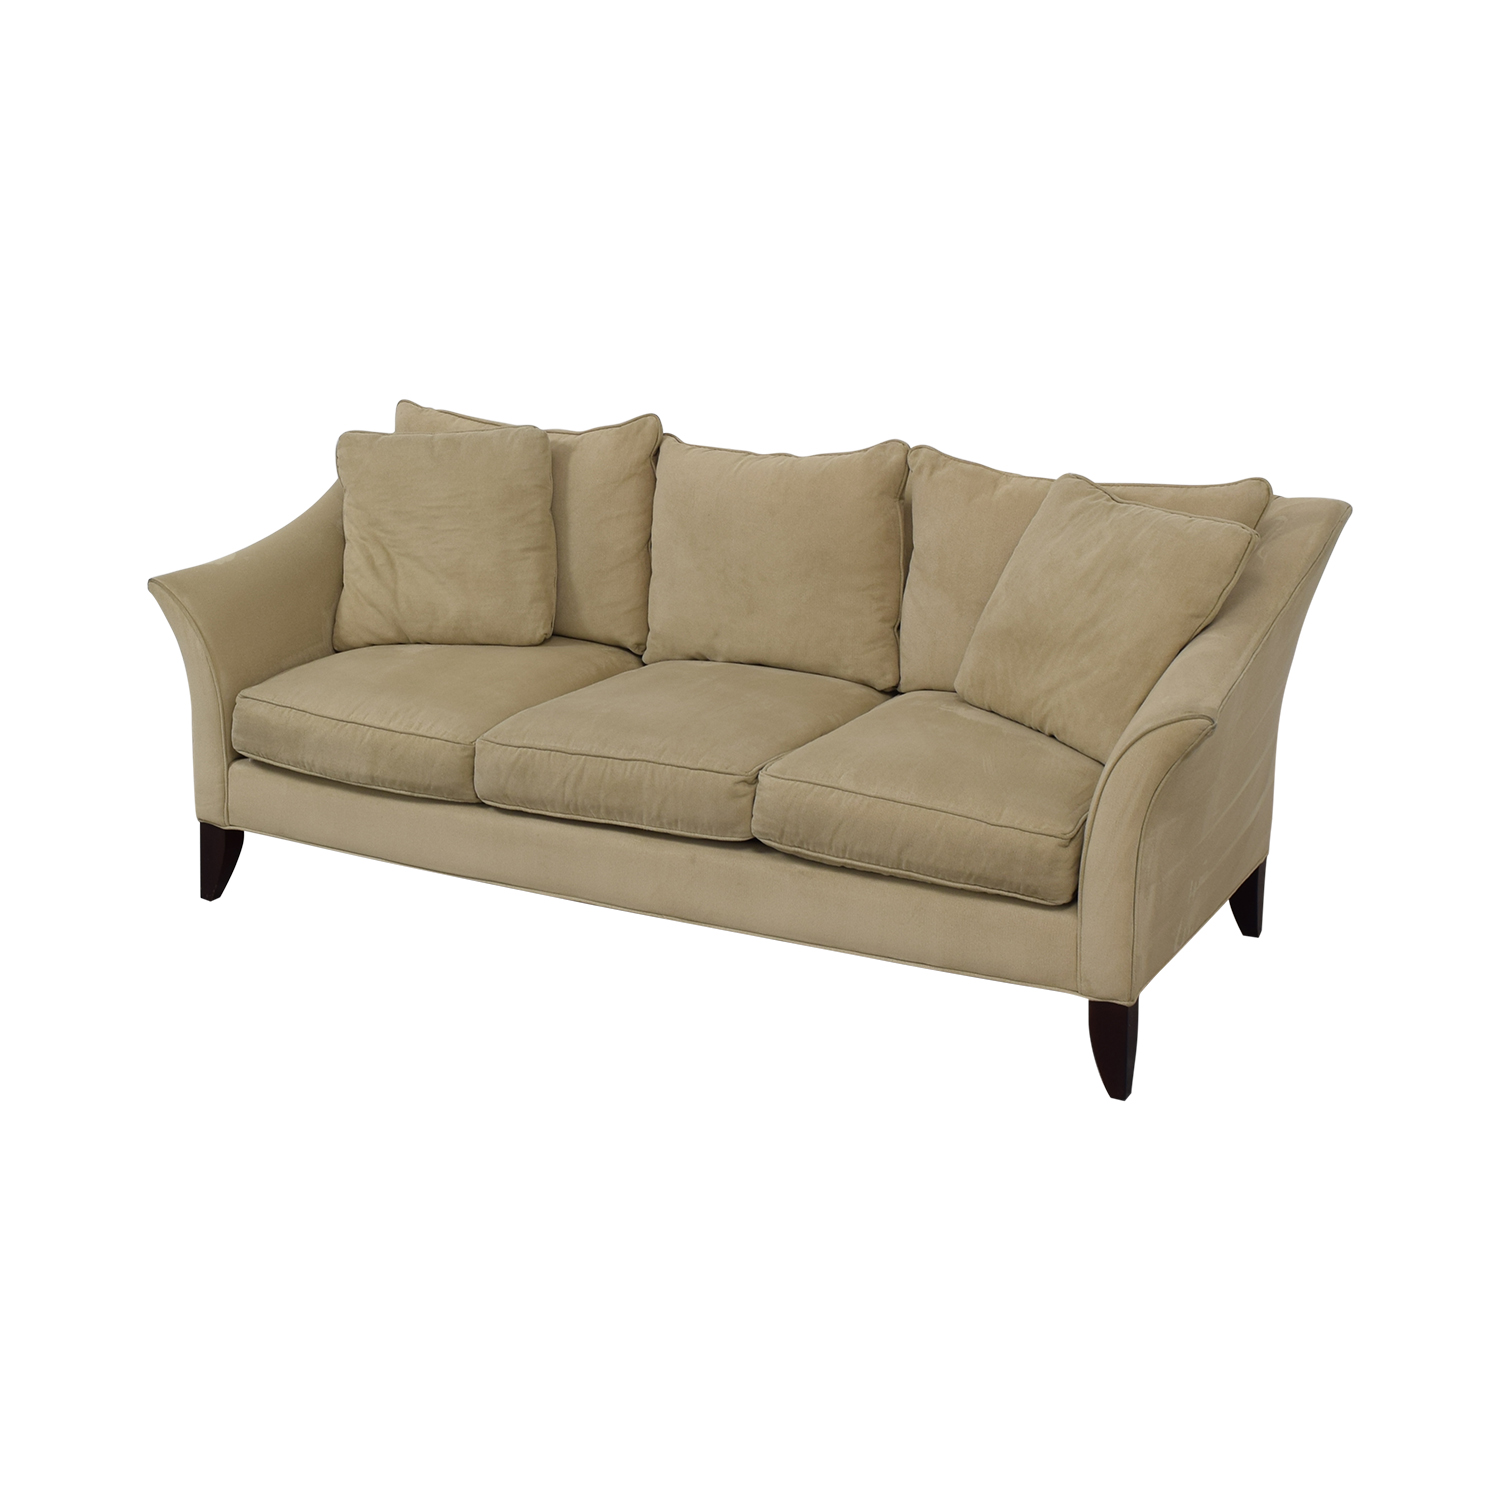 Maurice Villency Maurice Villency Three Seater Sofa